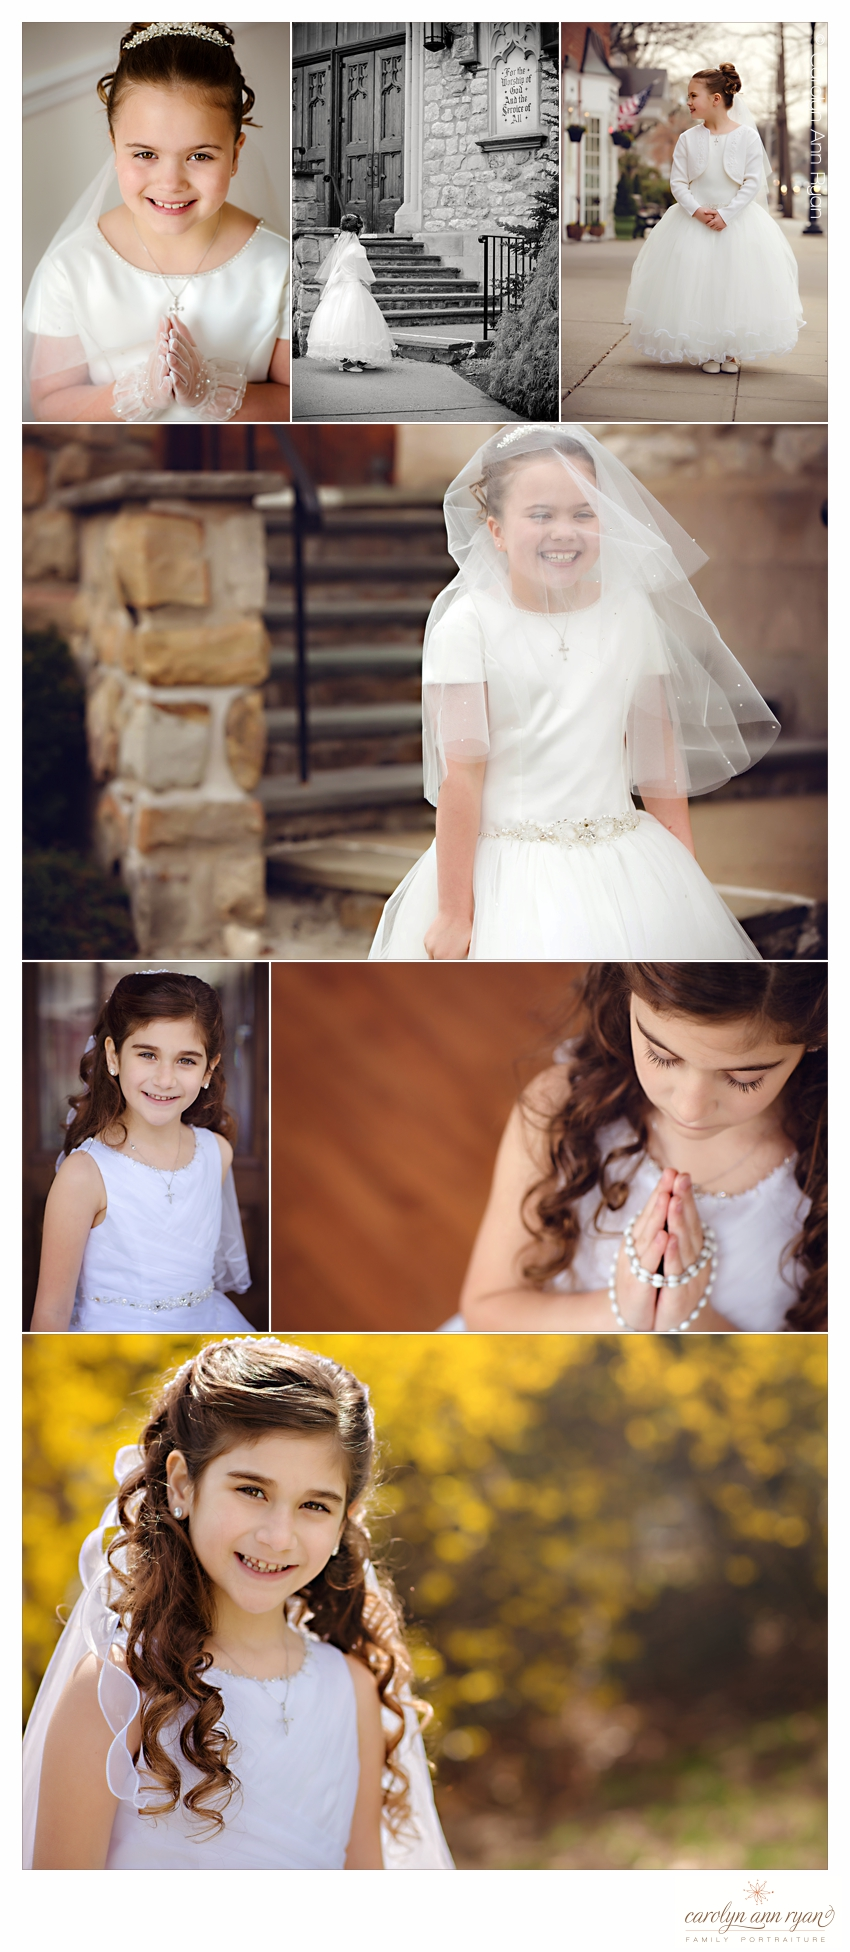 Child and Family Photographer Carolyn Ann Ryan shares First Communion Portraits